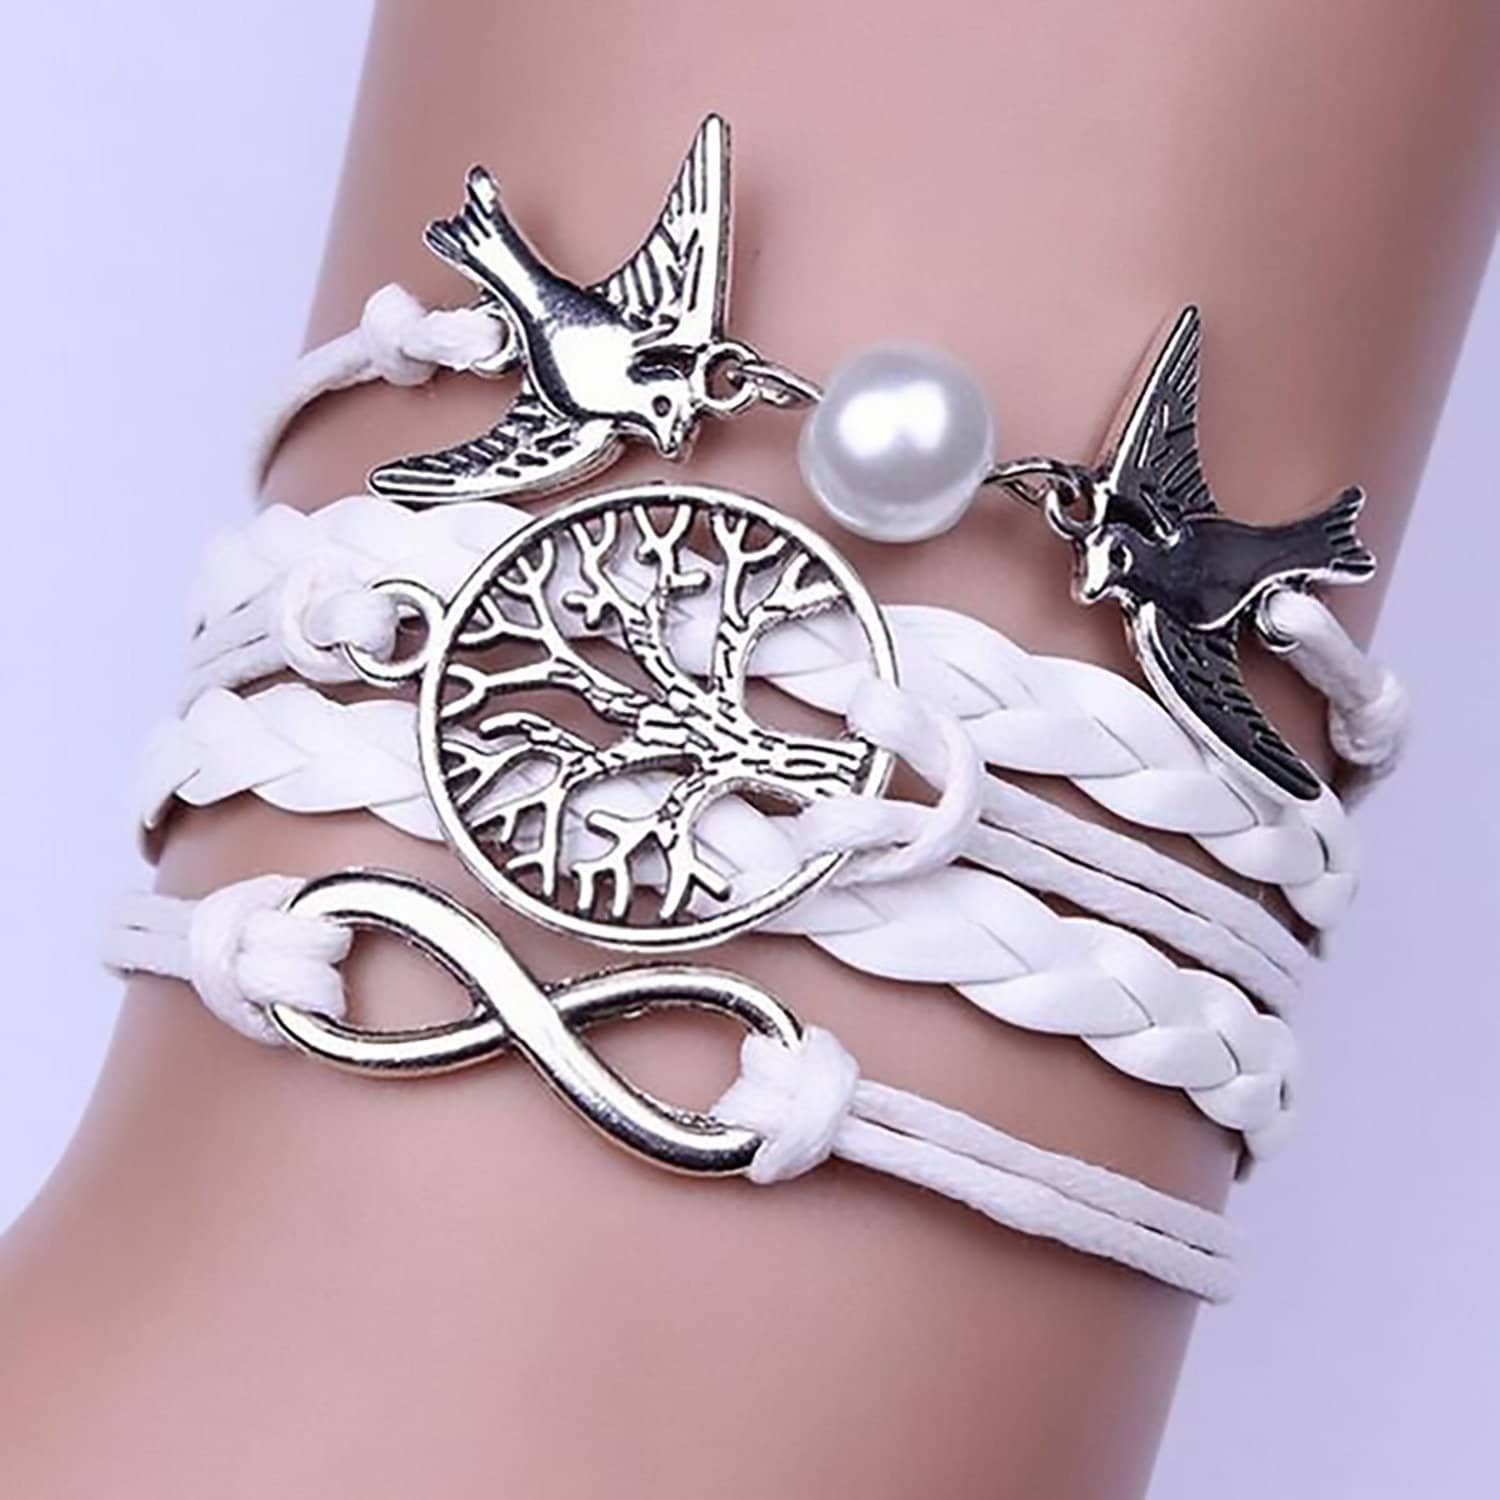 Infinity Handmade Adjustable Leather Doves Tree Infinity Charms Multilayer Bracelet (2047628247140)